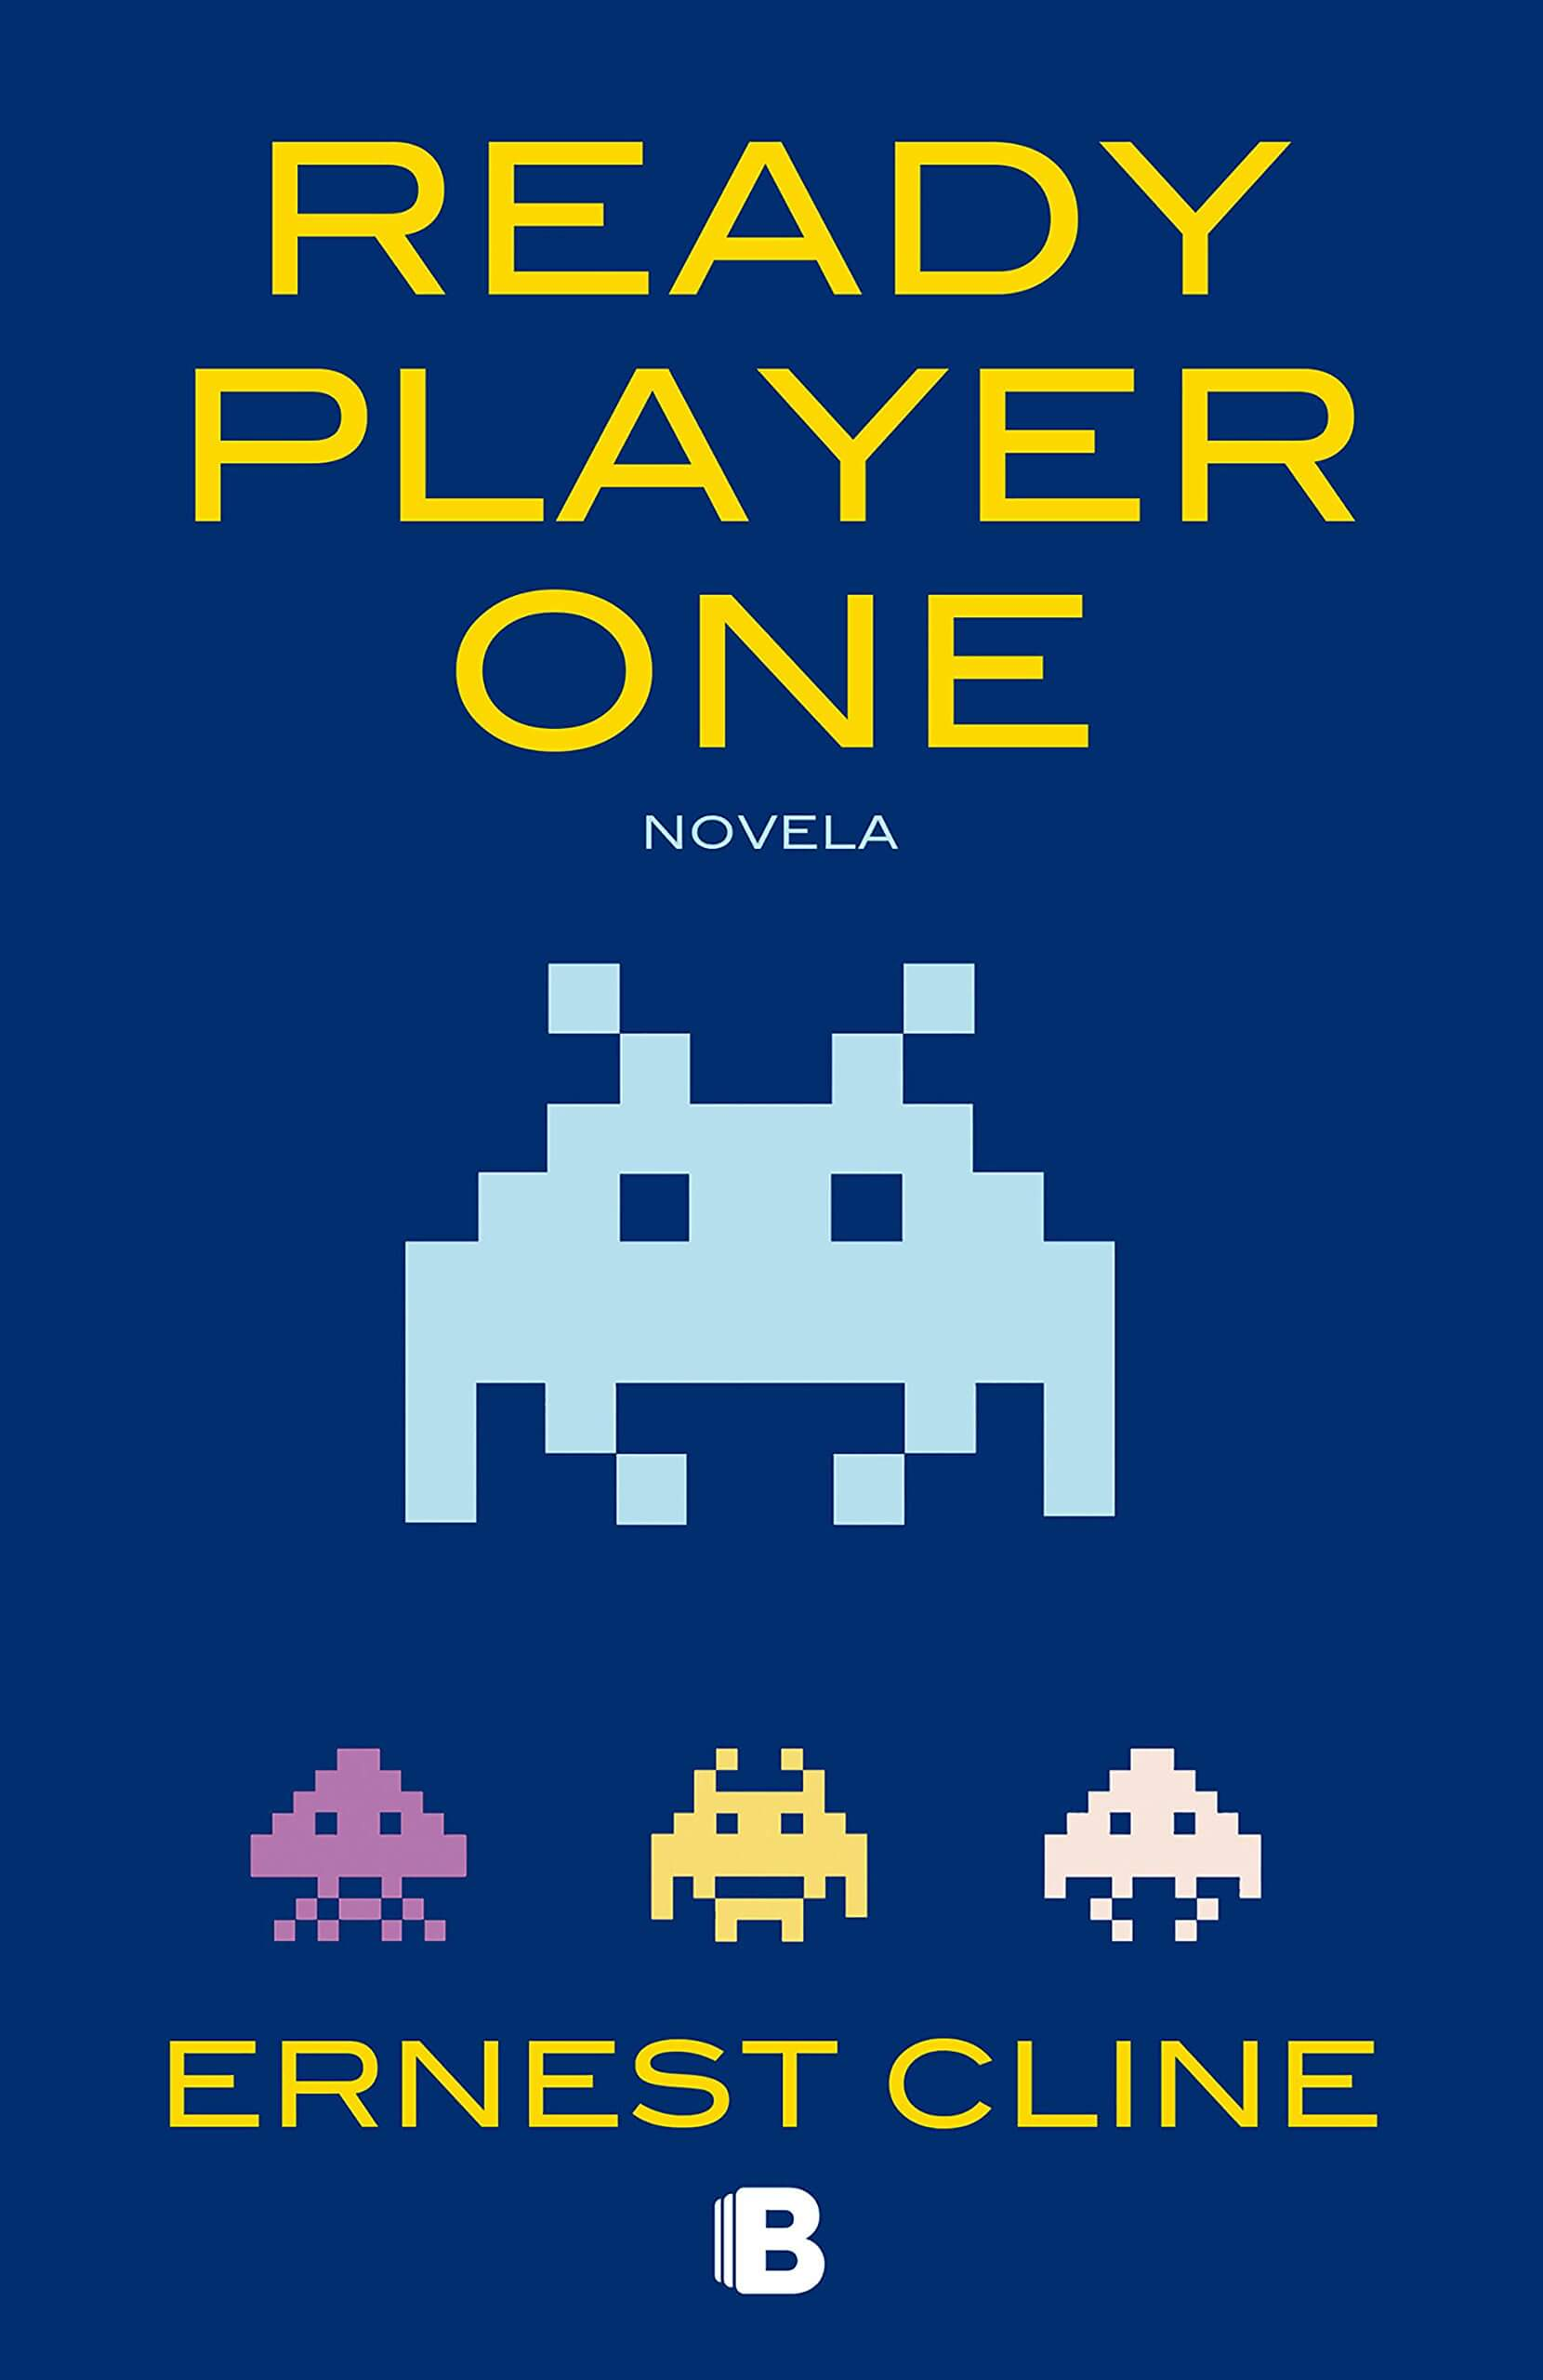 Ready Player One (Ernest Cline, 2011)